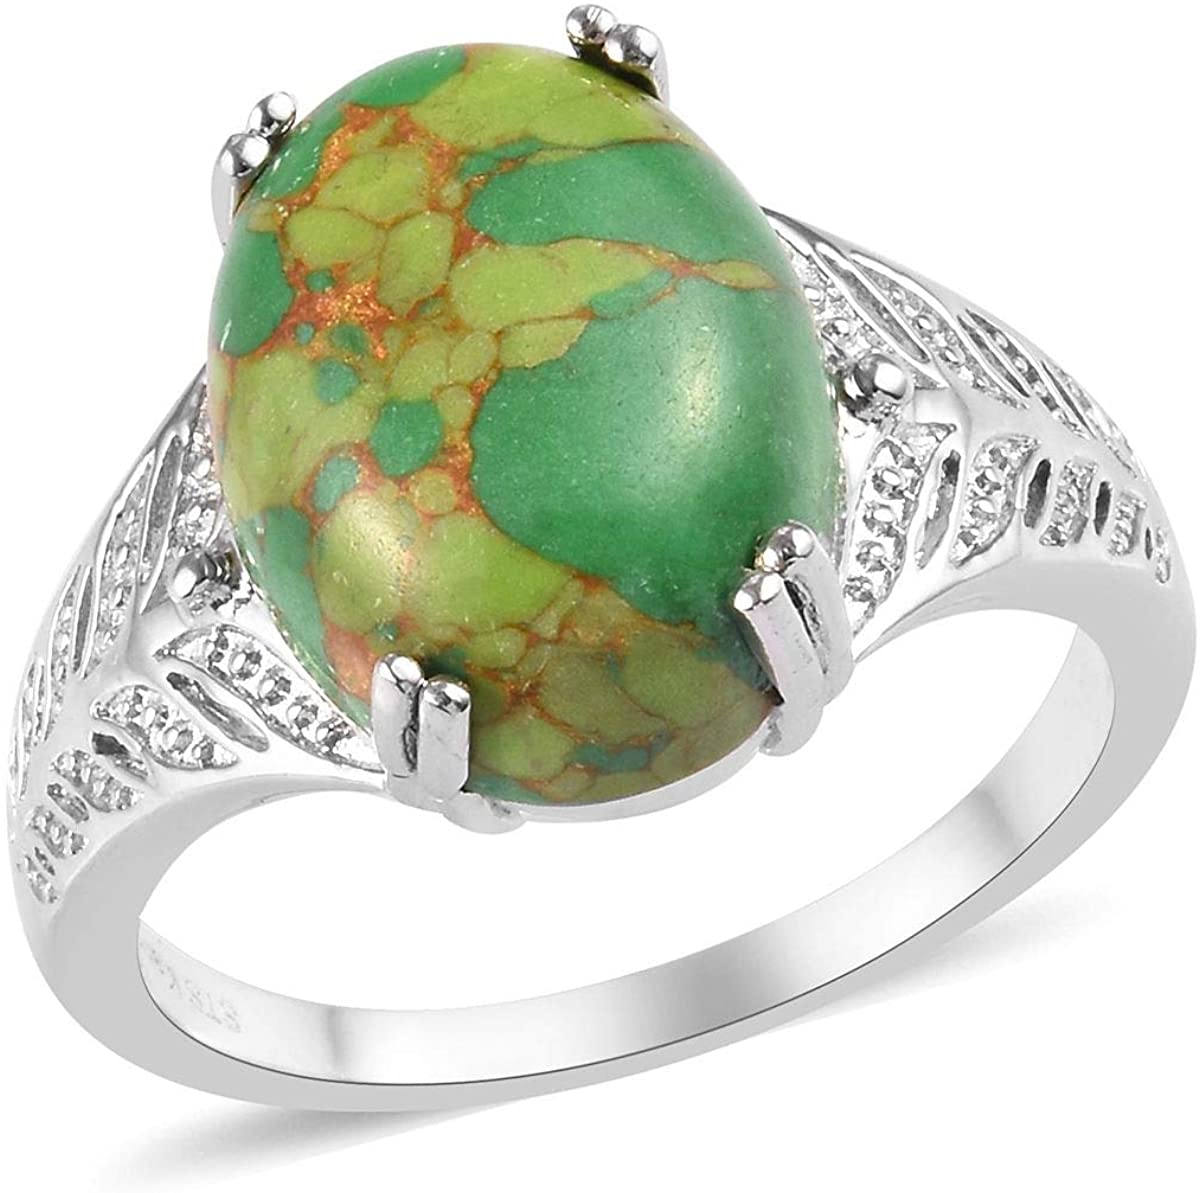 Shop LC Delivering Joy Karis Platinum Plated Oval Green Turquoise Solitaire Ring Unique Costume Promise Stylish Jewelry for Women Size 10